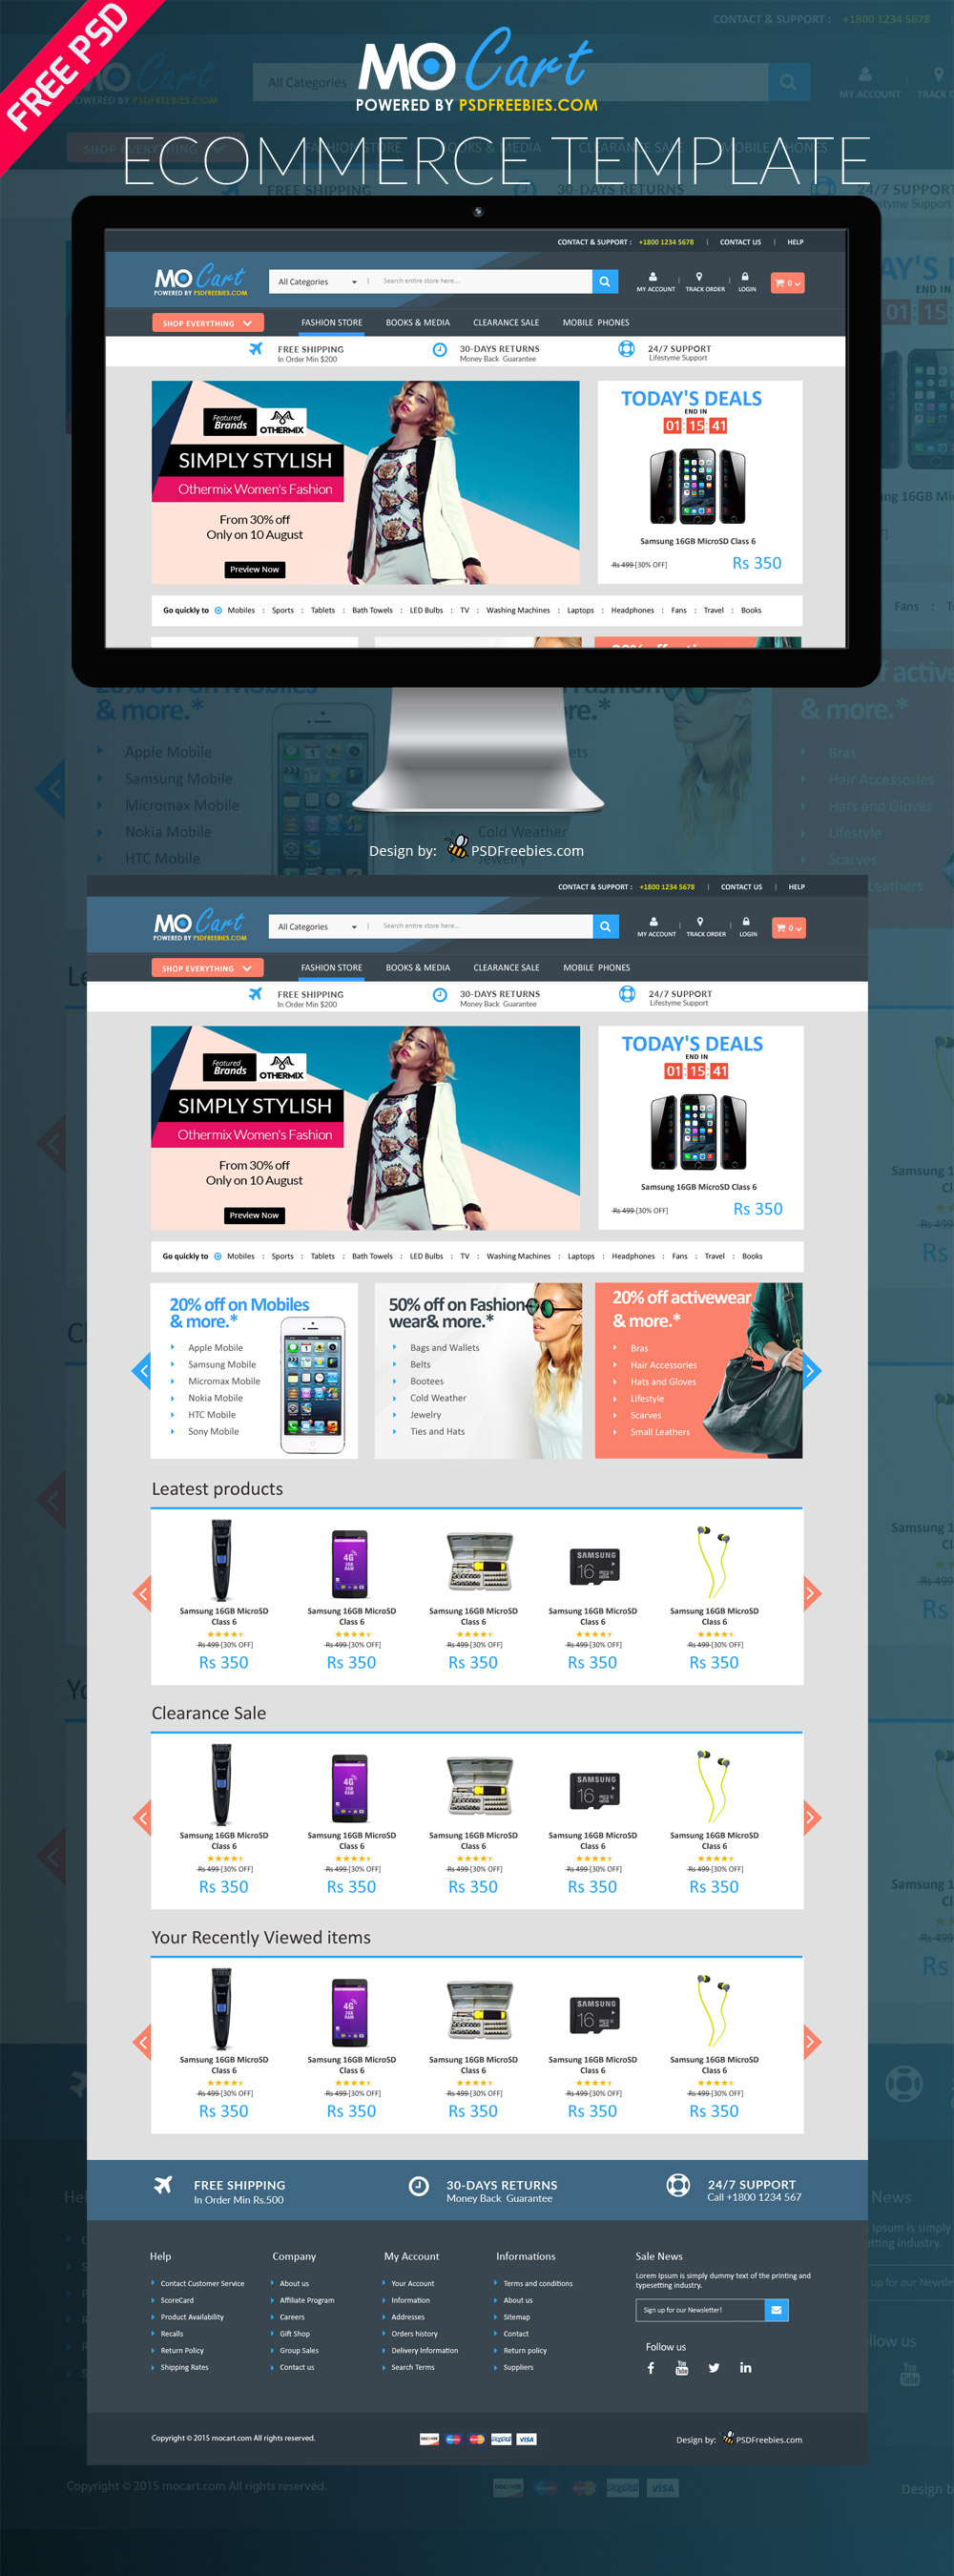 Mocart e commerce website psd template for E commerce sites templates